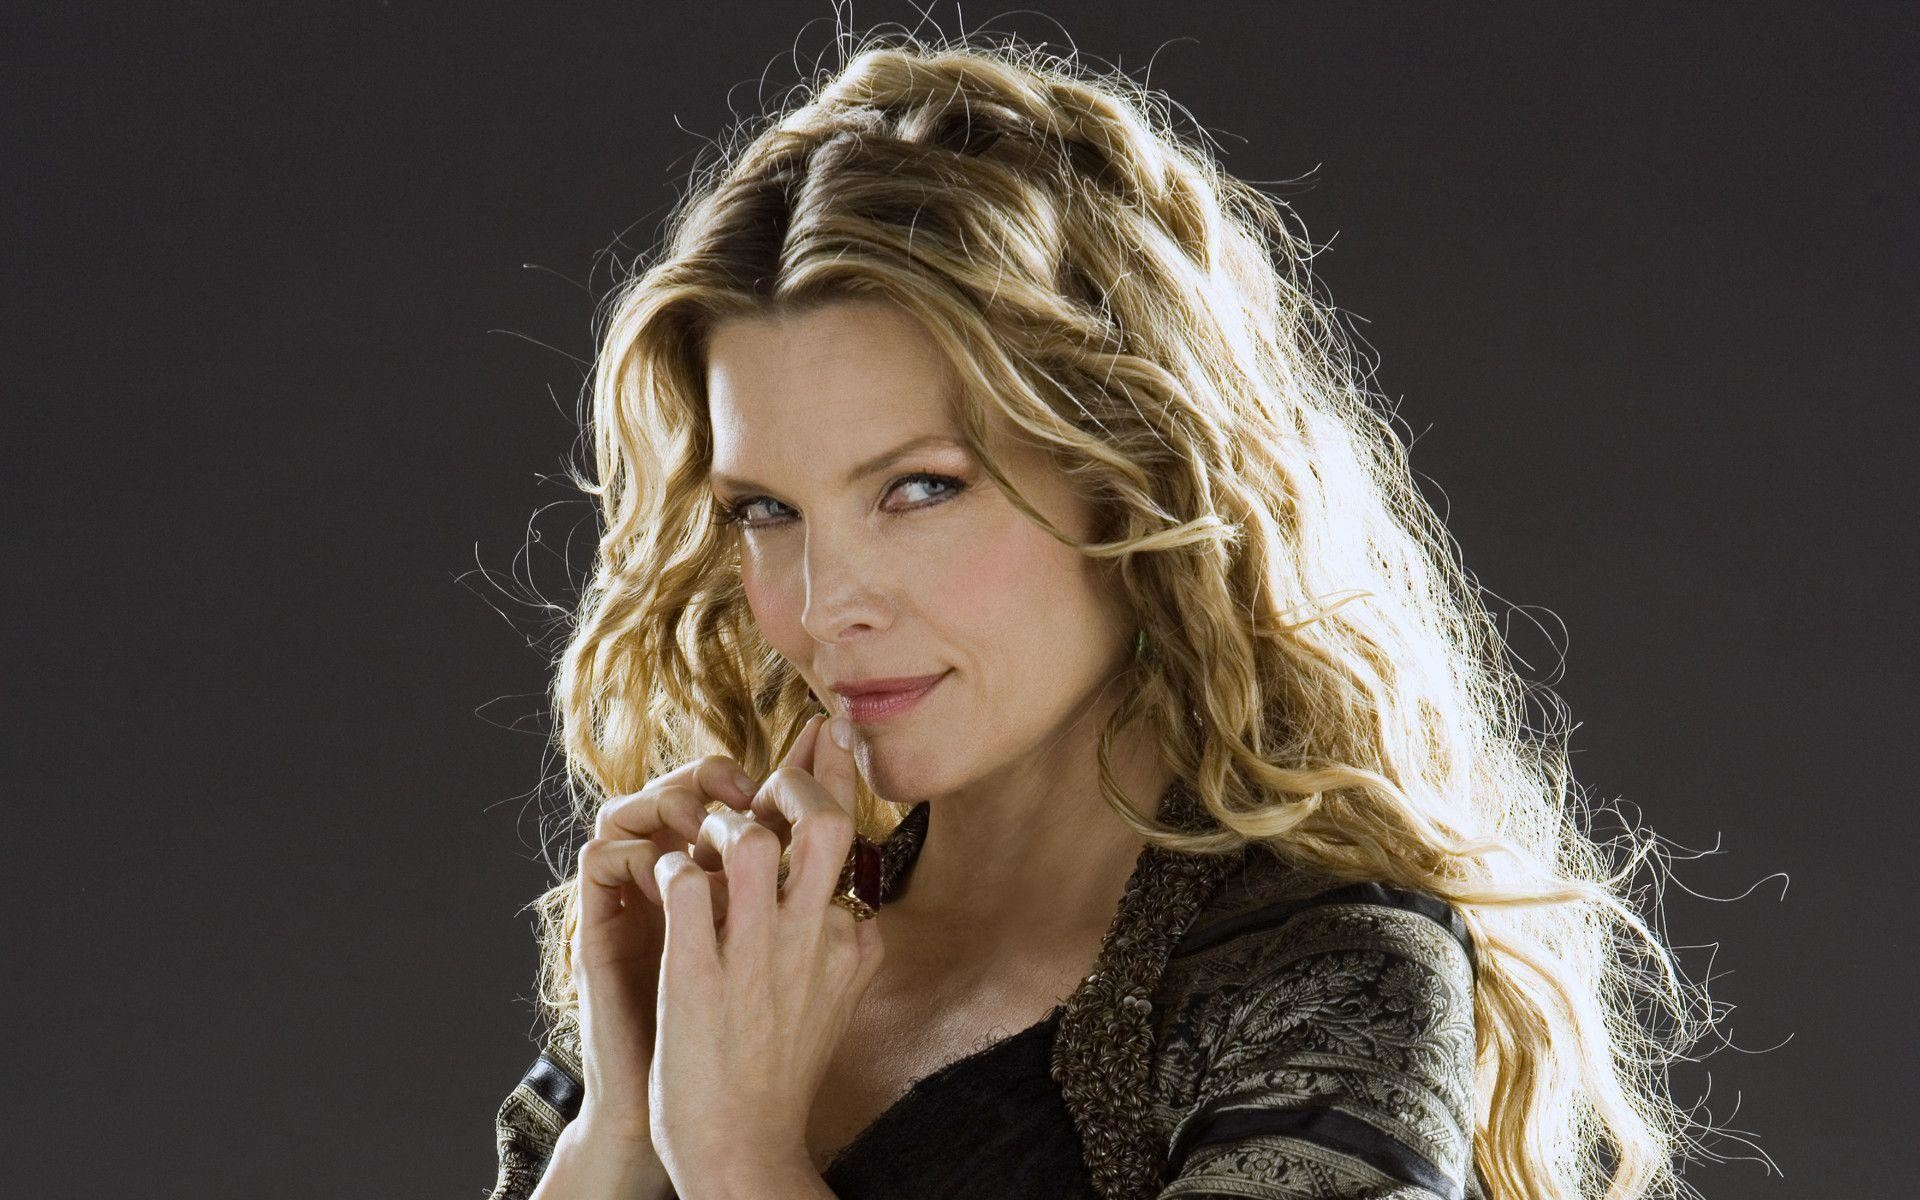 Res: 1920x1200, Michelle Pfeiffer Wallpapers - HD Wallpapers Inn